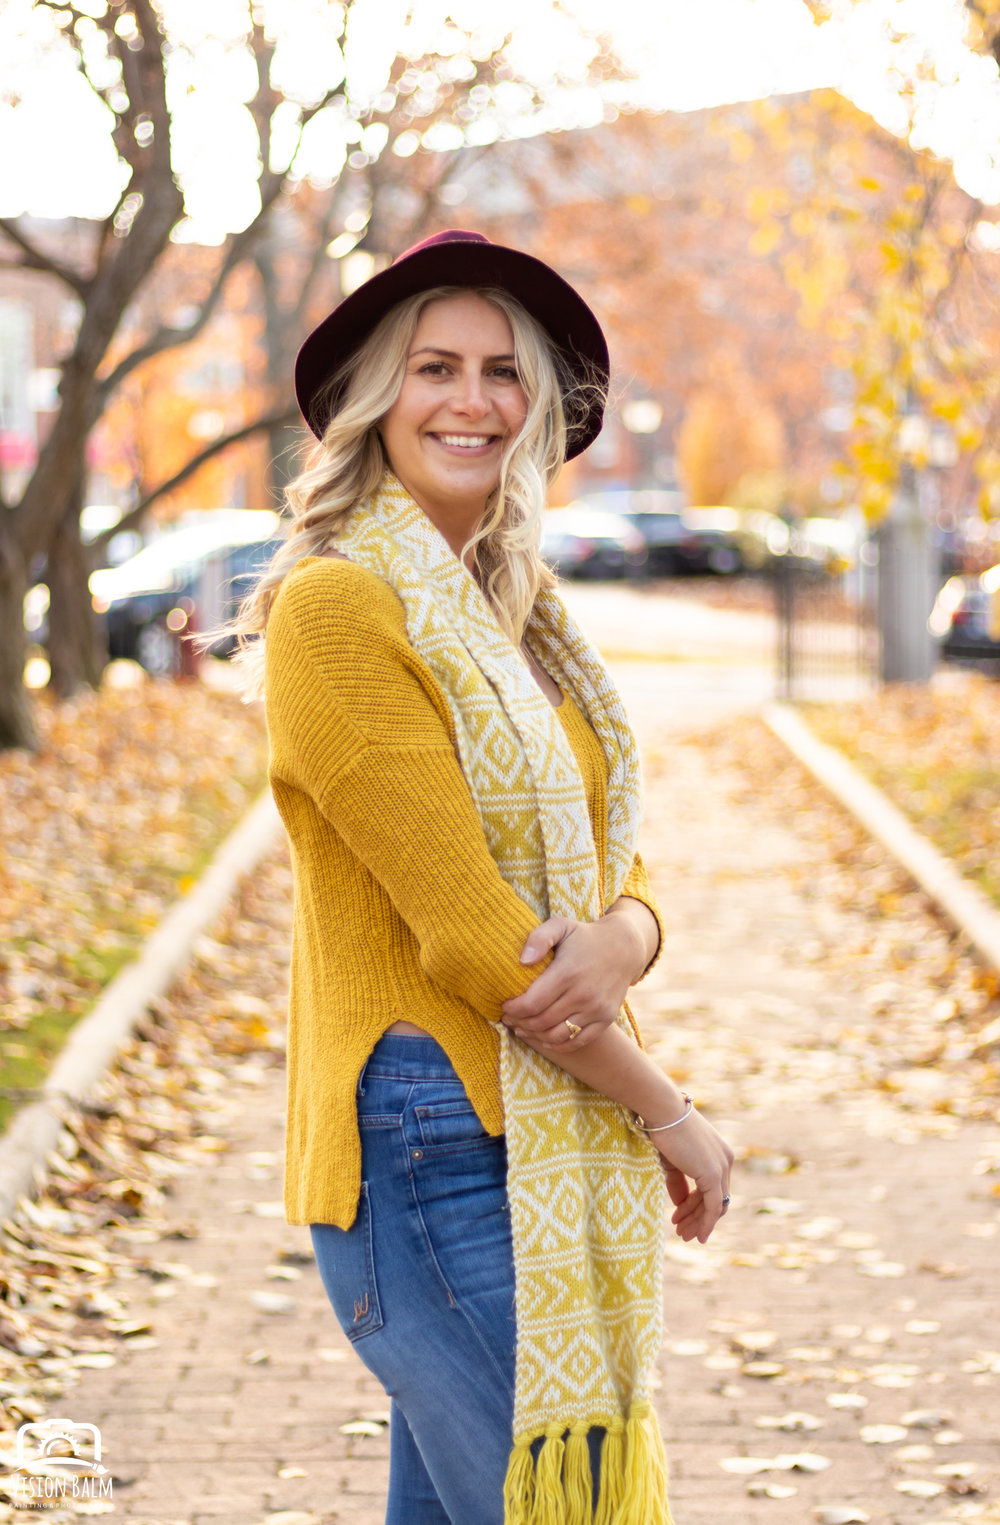 Professional fall portrait photography of model wearing a yellow sweater and hat photographed by Vision Balm in Charleston, SC.